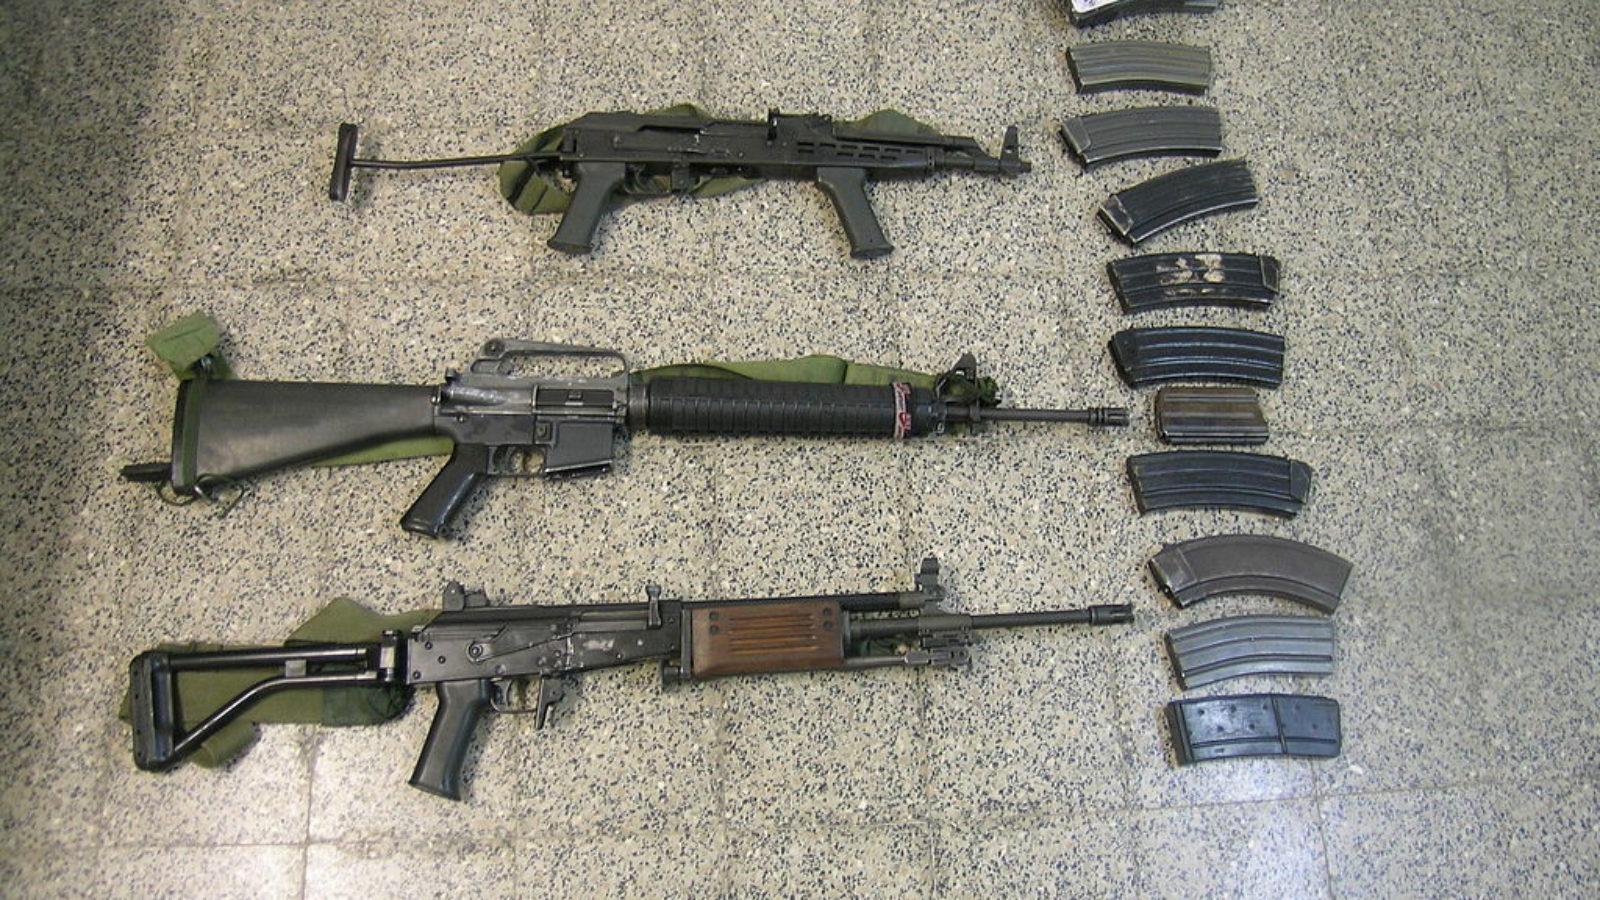 Israel Defense Forces - Militant in Possession of Explosives and Multiple Guns